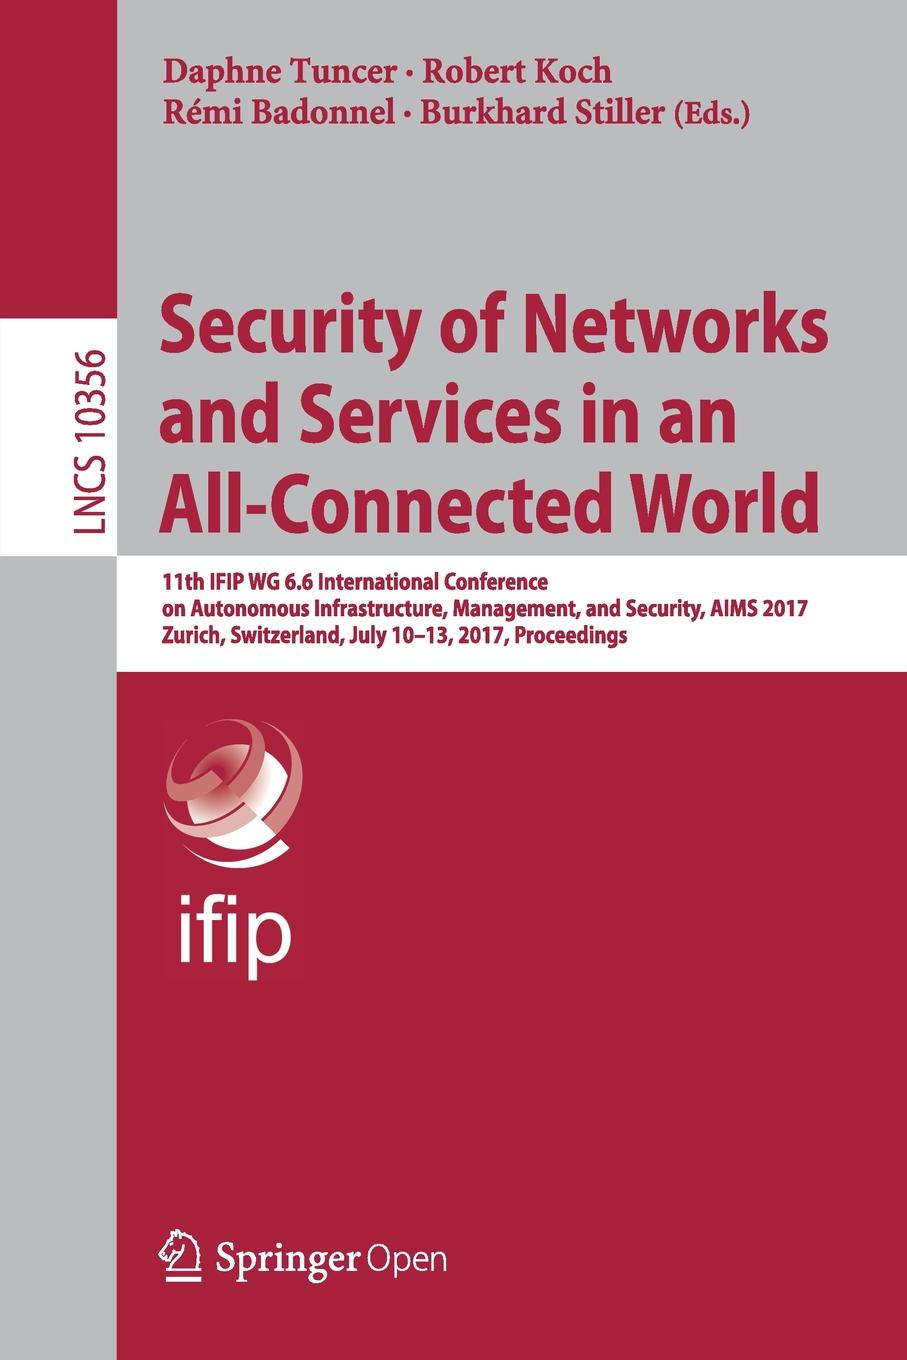 Security of Networks and Services in an All-Connected World. 11th IFIP WG 6.6 International Conference on Autonomous Infrastructure, Management, and Security, AIMS 2017, Zurich, Switzerland, July 10-13, 2017, Proceedings цена в Москве и Питере